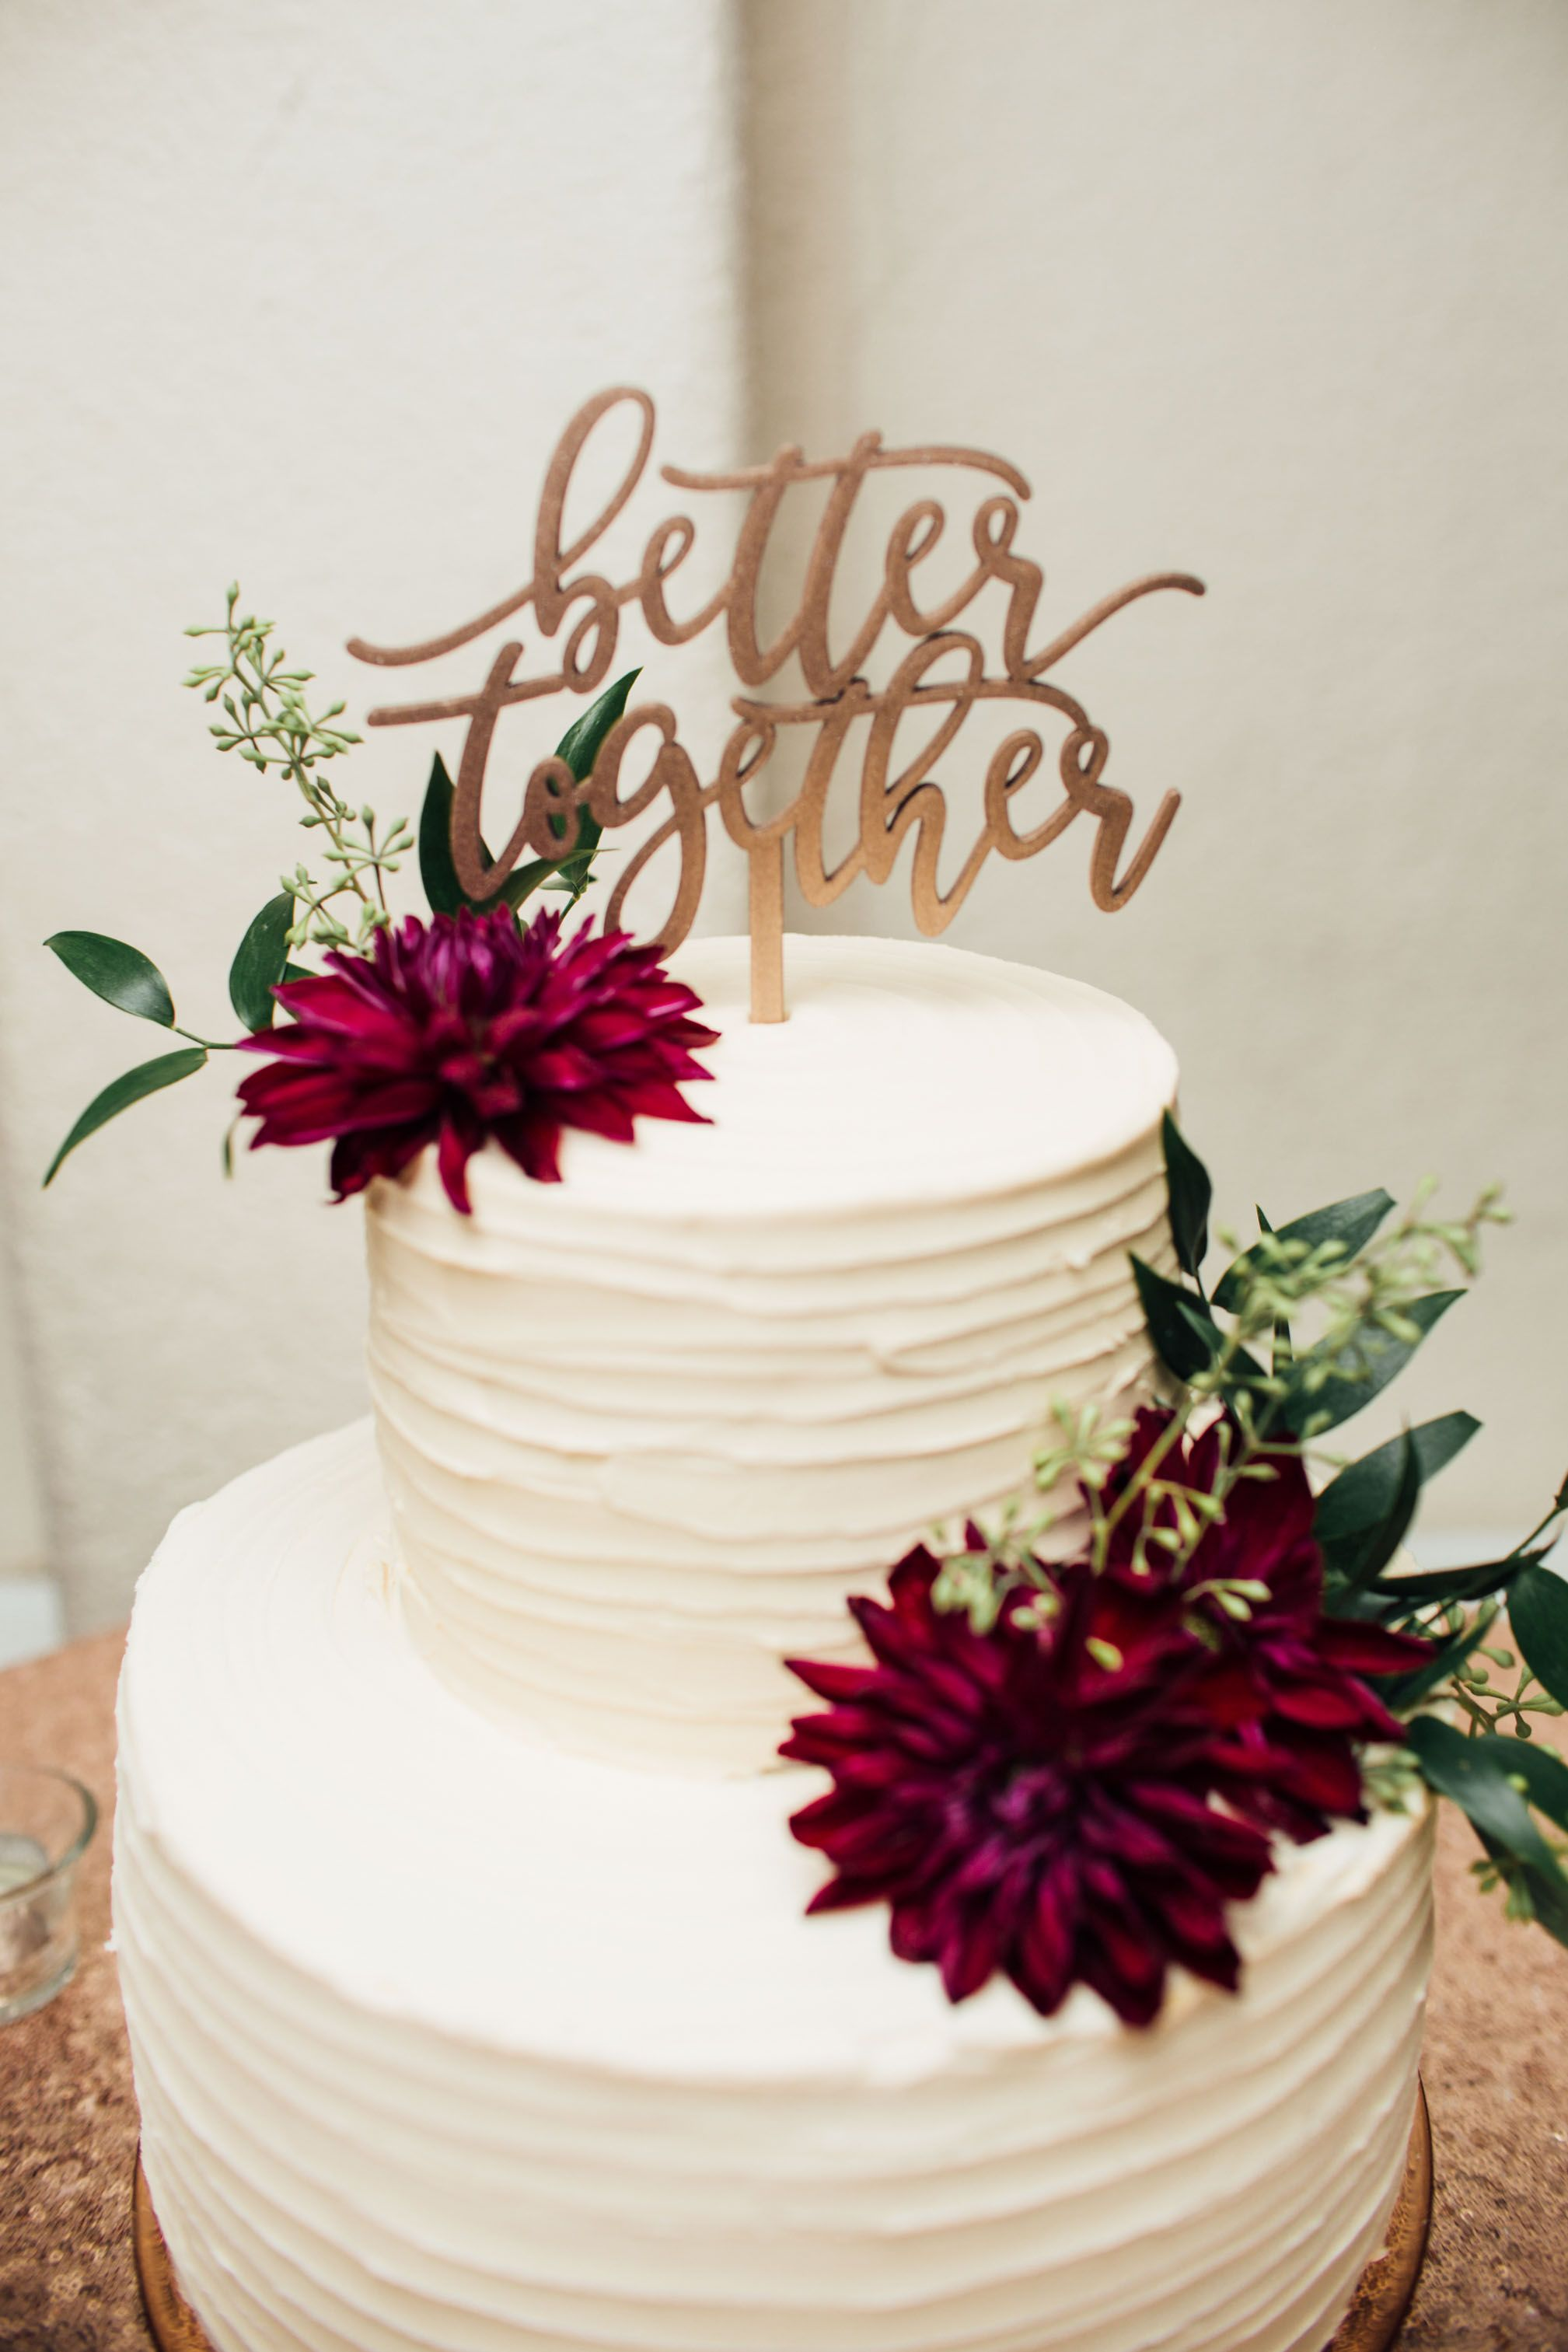 Simple 2 Tier Textured Cake Burgundy Dahlias Better Together